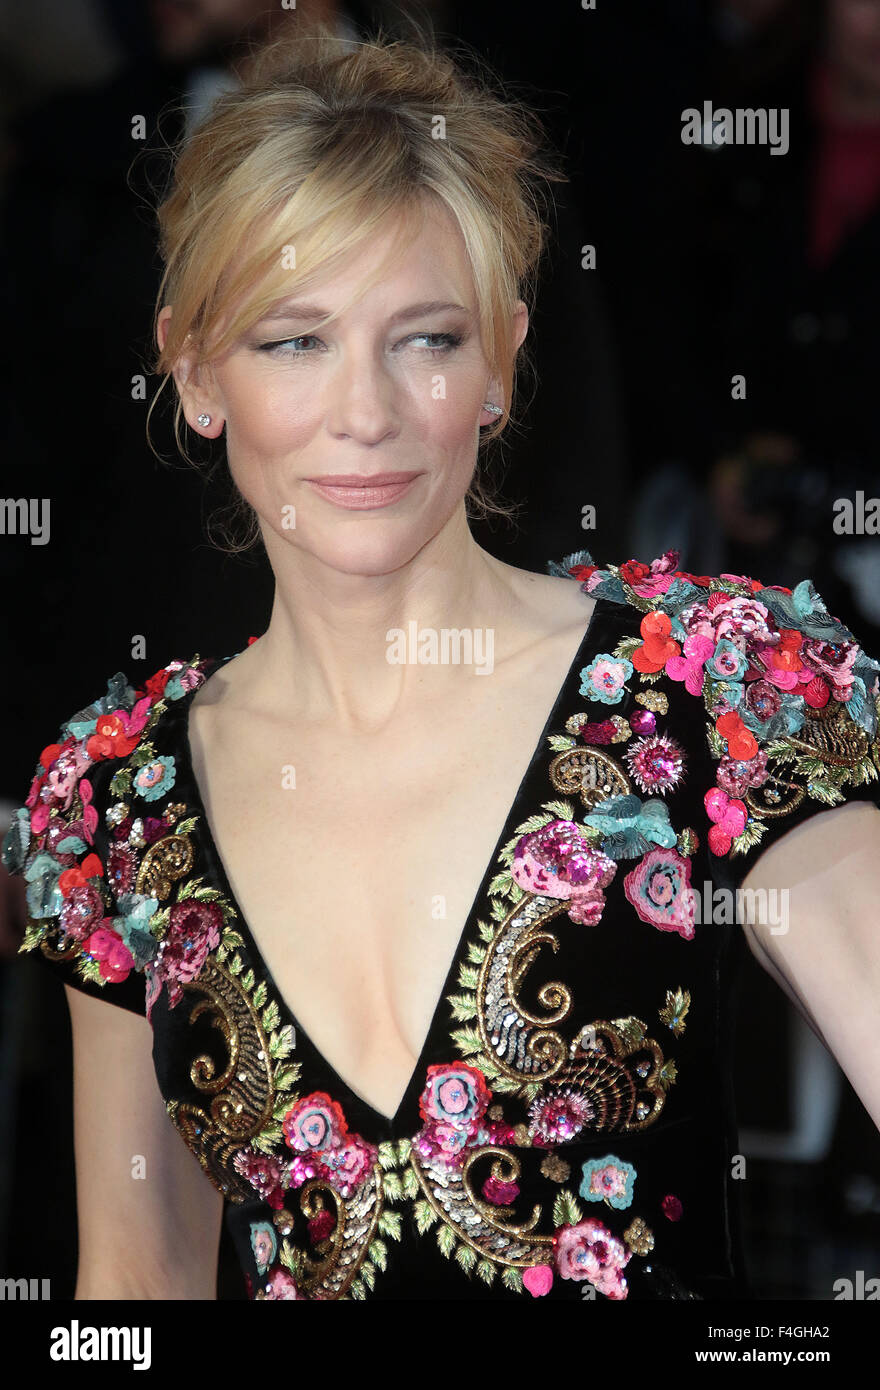 London, UK. 17th October, 2015. Cate Blanchett attending 'Truth' screening at BFI London Film Festival at - Stock Image